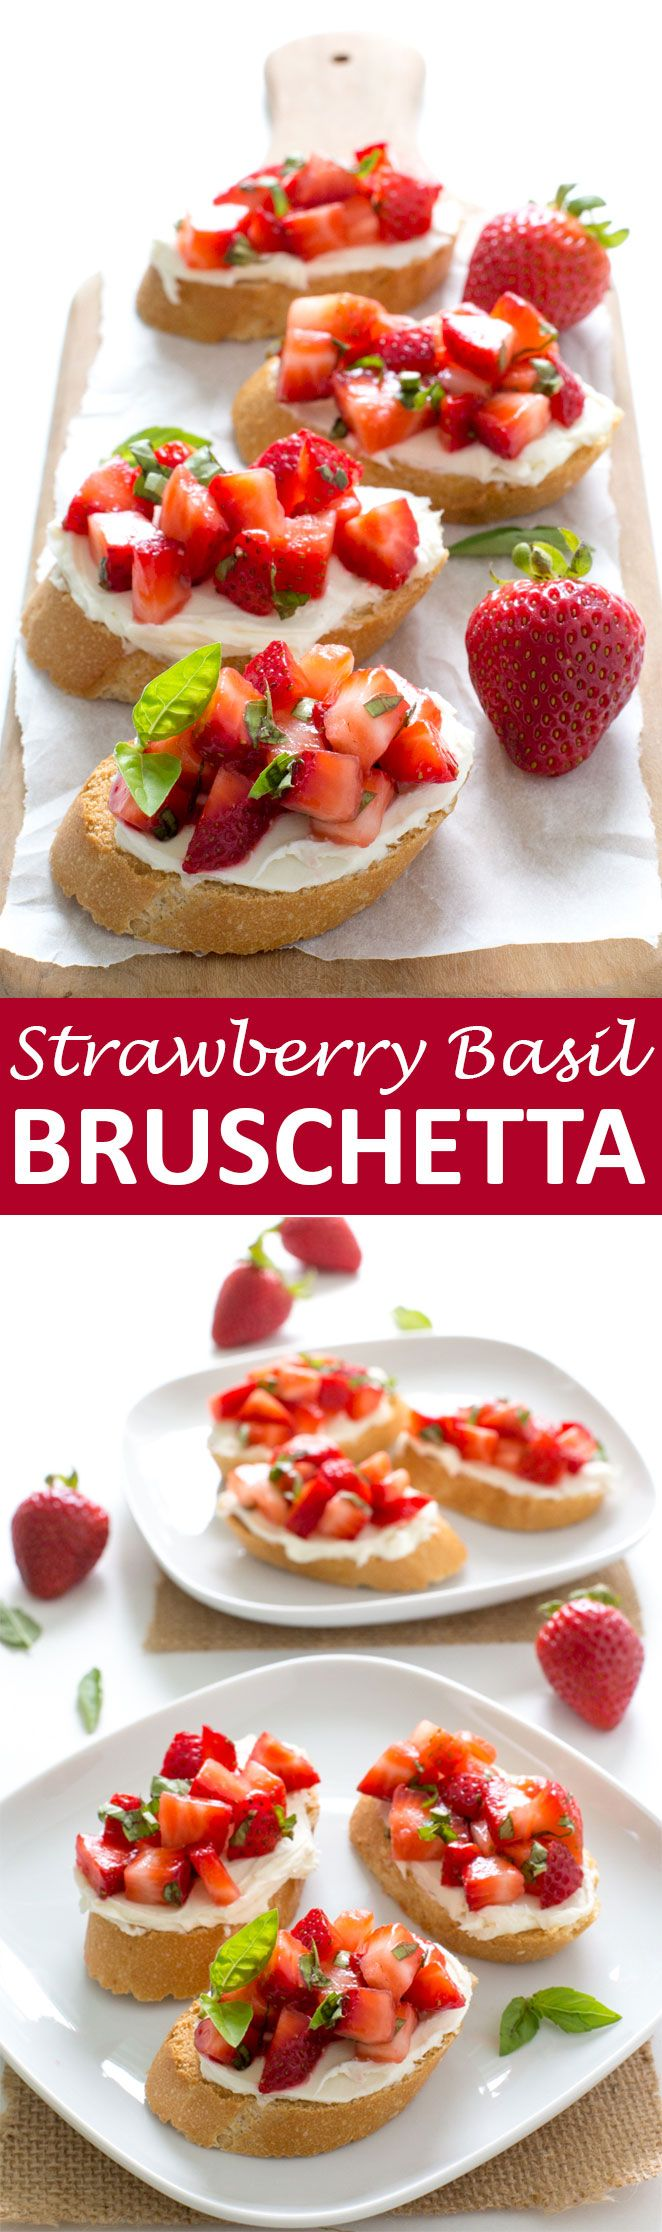 Strawberry Basil Bruschetta with creamy mascarpone cheese. A super easy appetizer with only 5 ingredients! Ready in less than 10 minutes! | chefsavvy.com #recipe #strawberry #basil #bruschetta